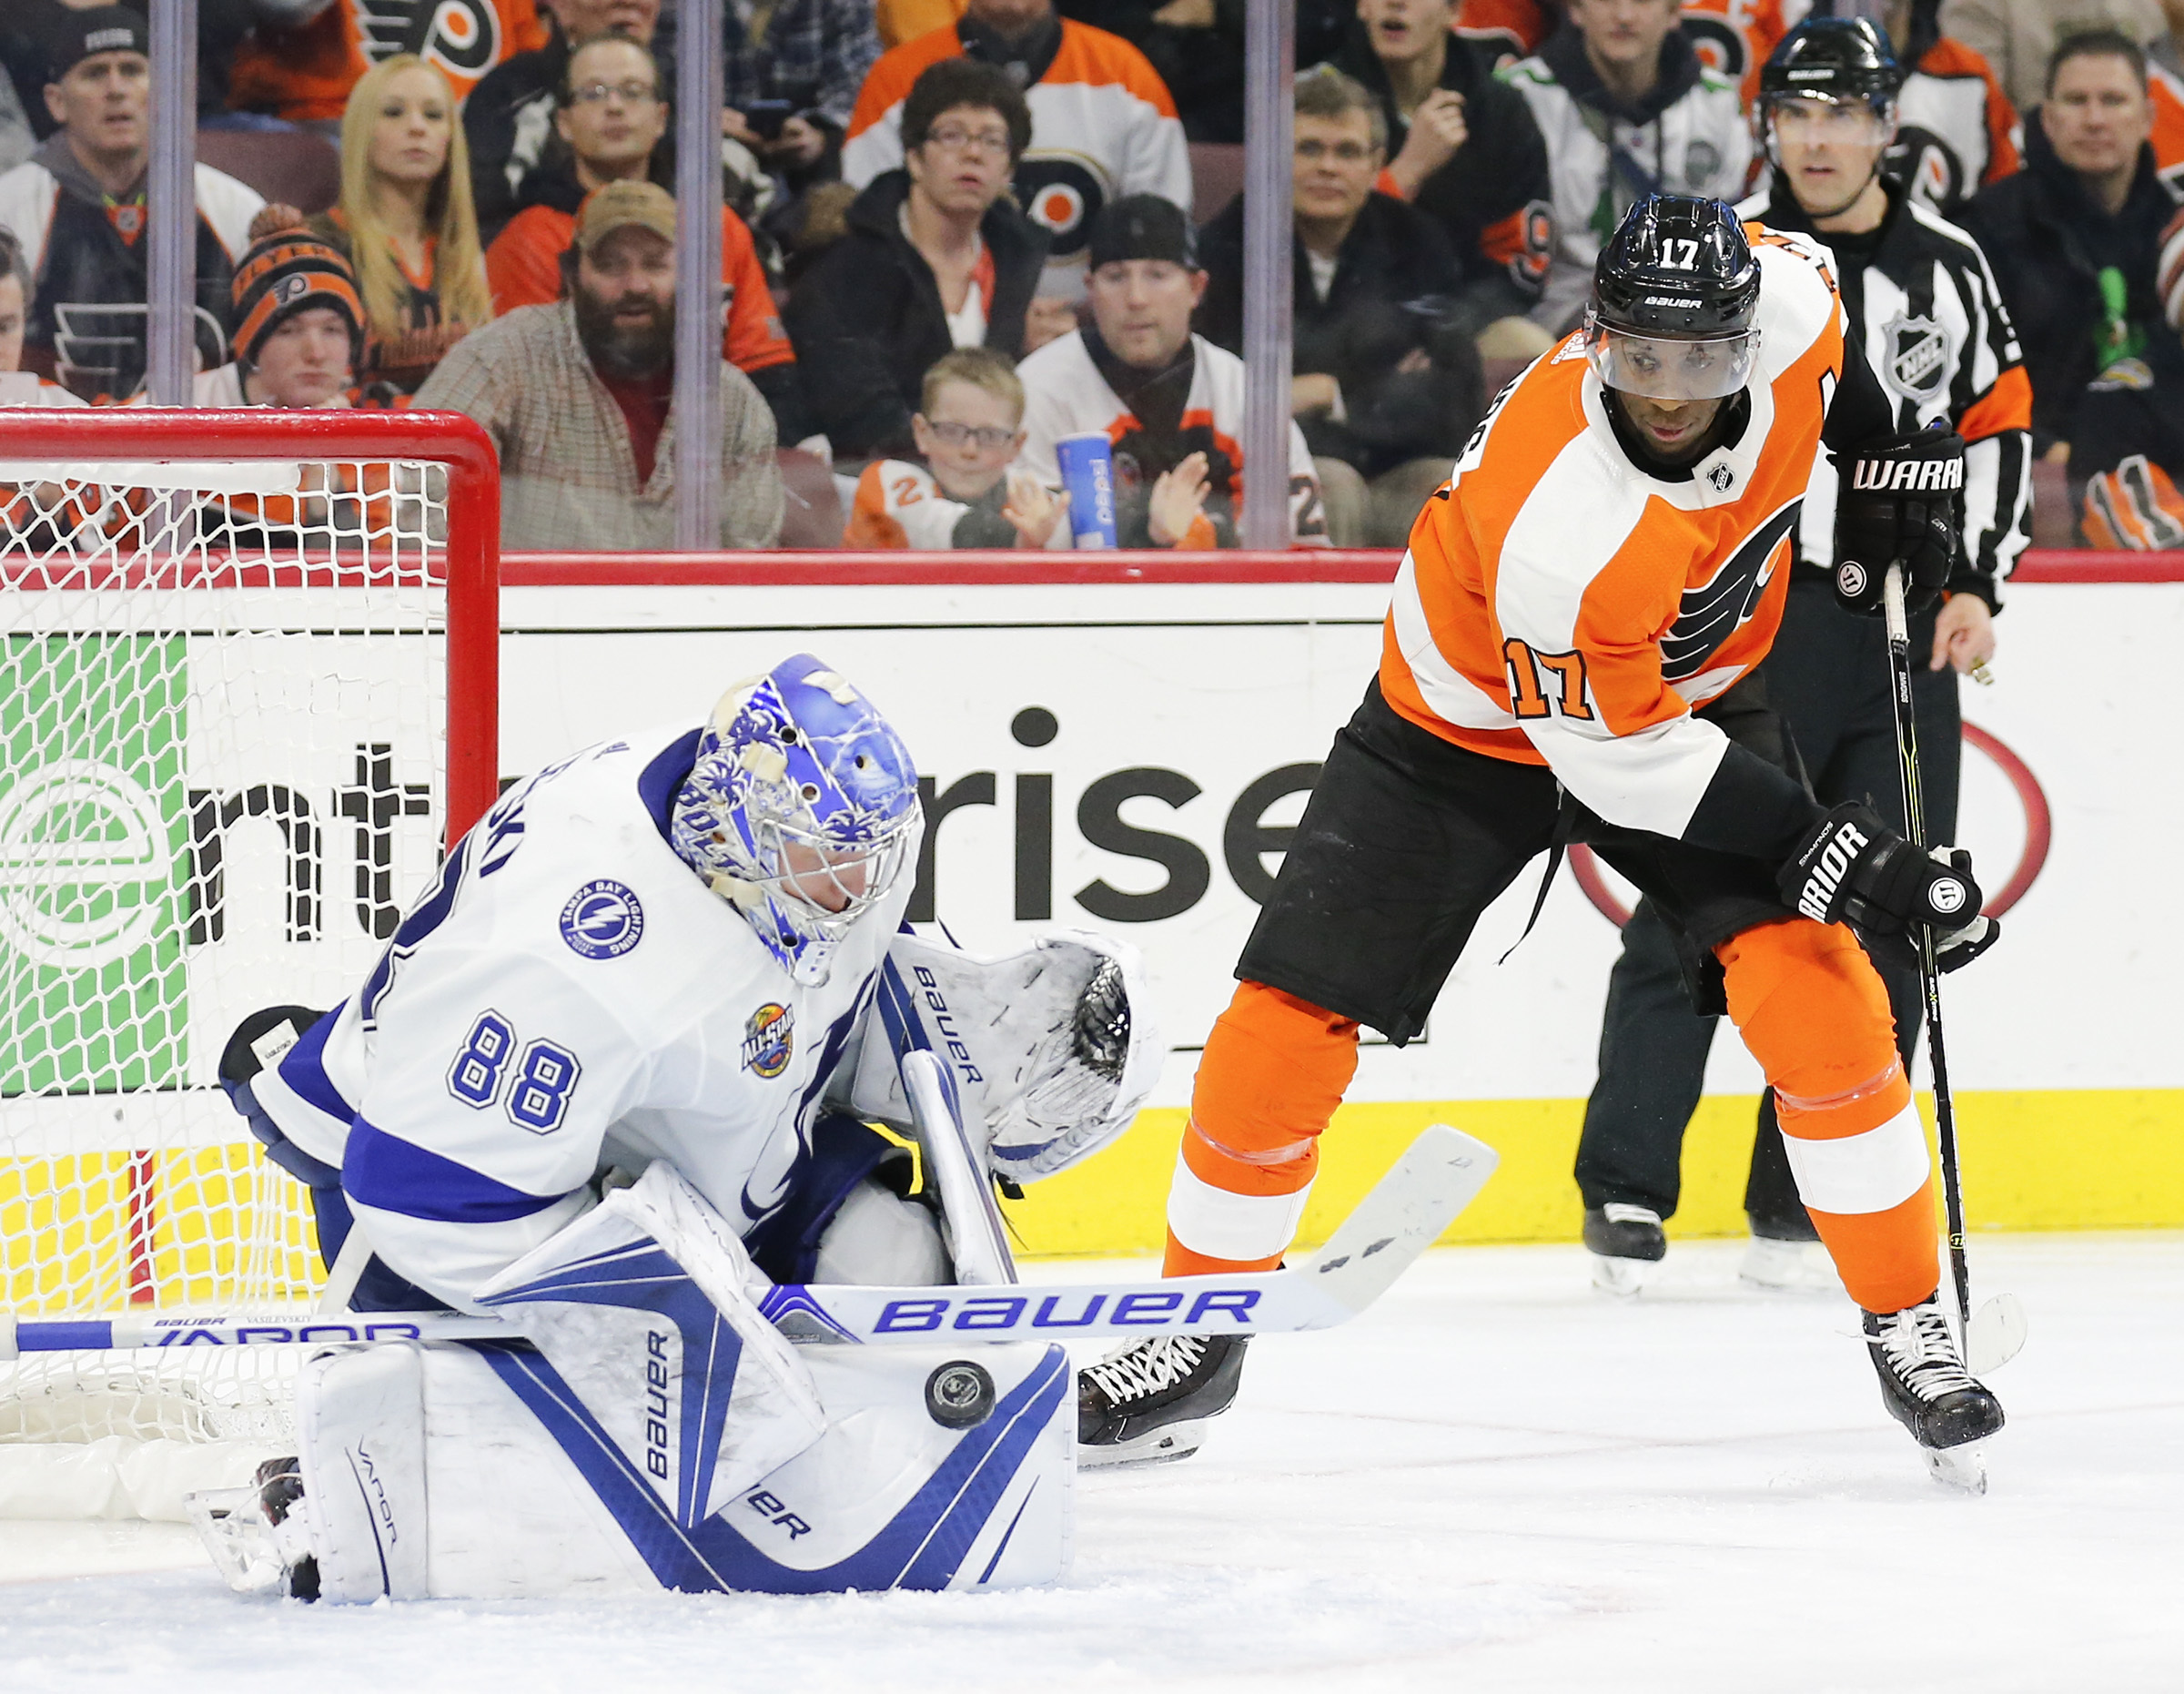 Flyers right winger Wayne Simmonds watching Tampa Bay goaltender Andrei Vasilevskiy make a save during the third period Thursday.